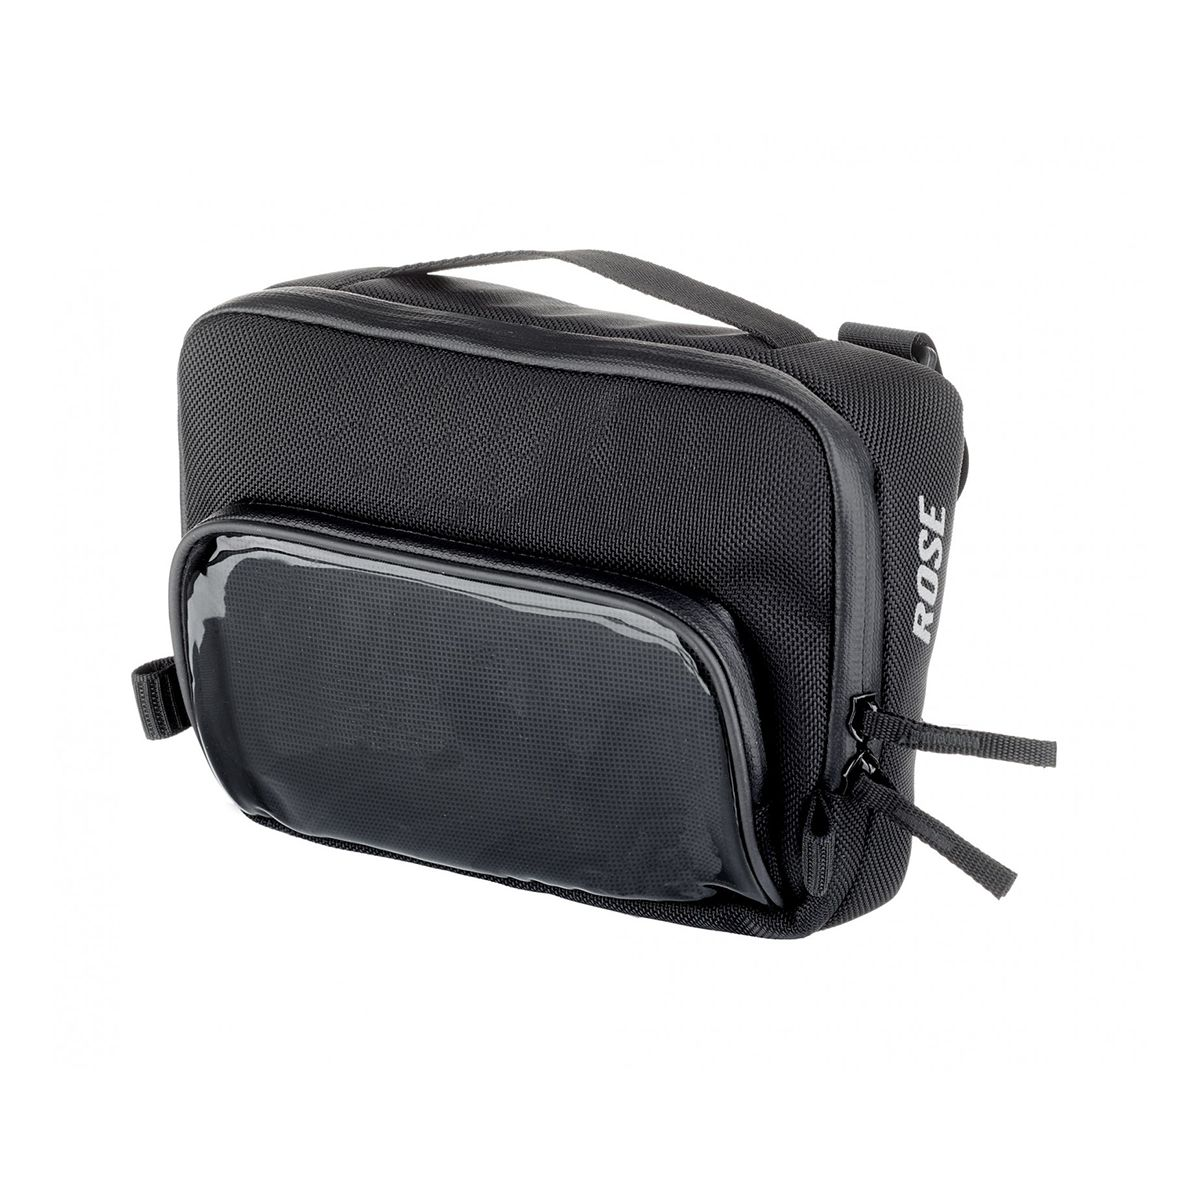 Smartphone Bag for the handlebar